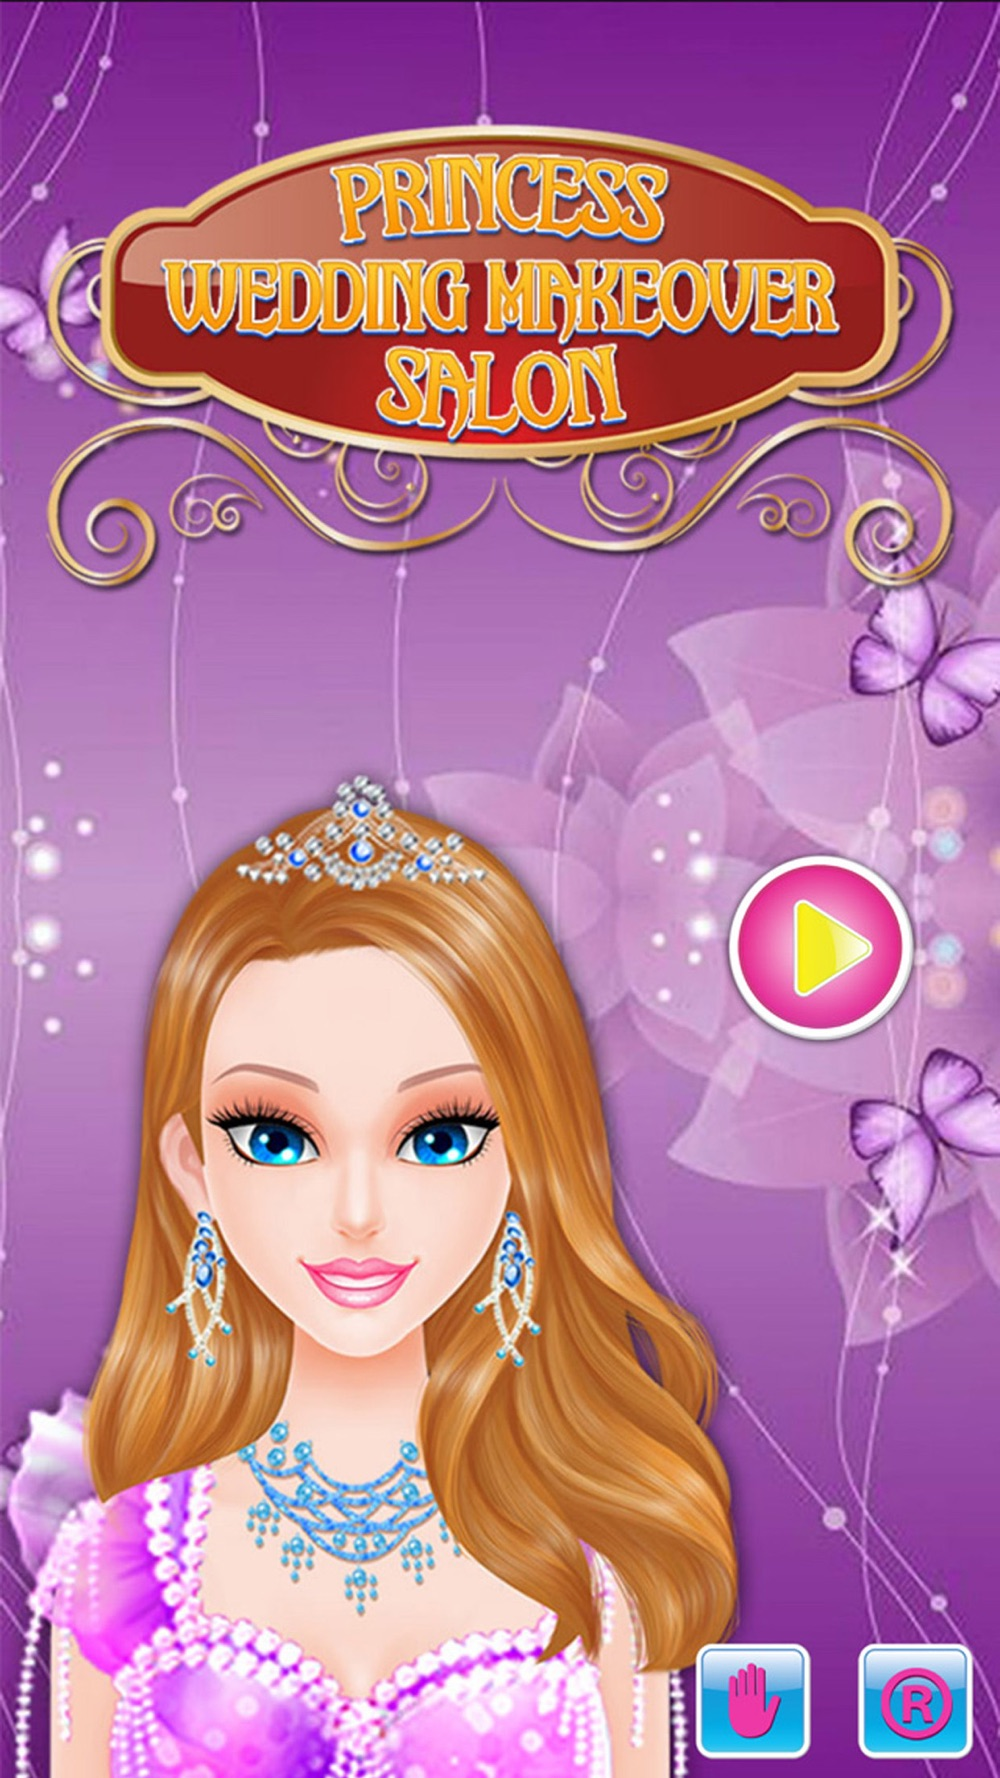 Princess wedding makeover salon : amazing spa, makeup and dress up free games for girls cheat codes